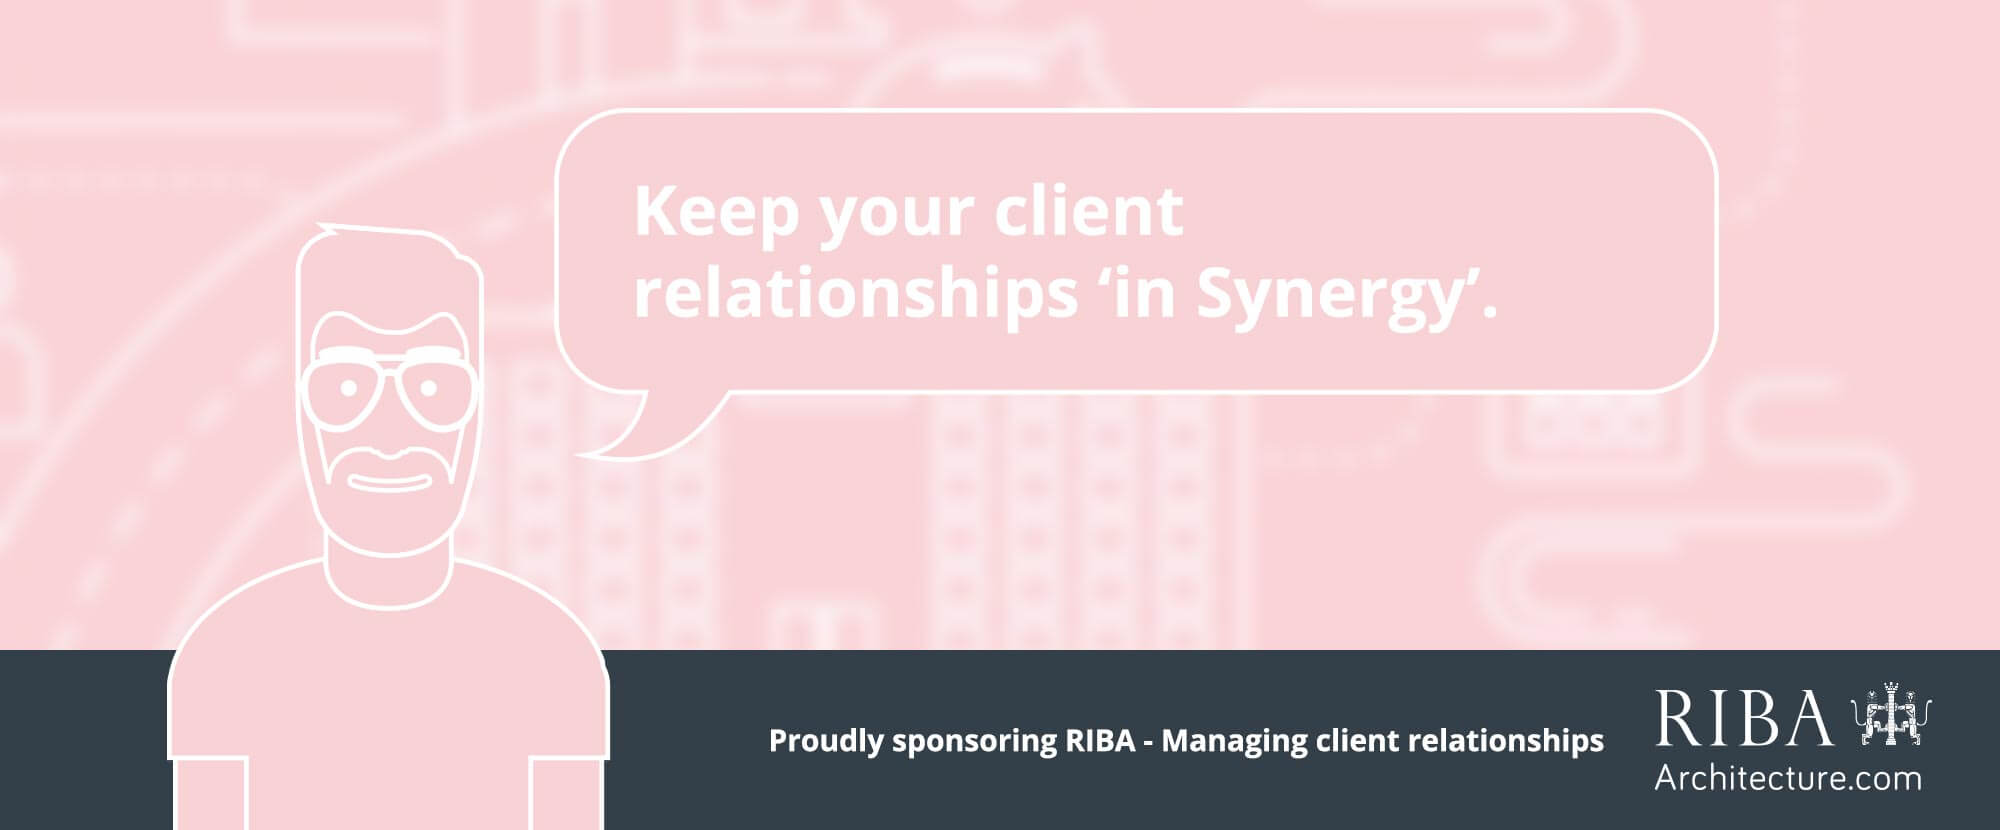 RIBA - managing client relationships